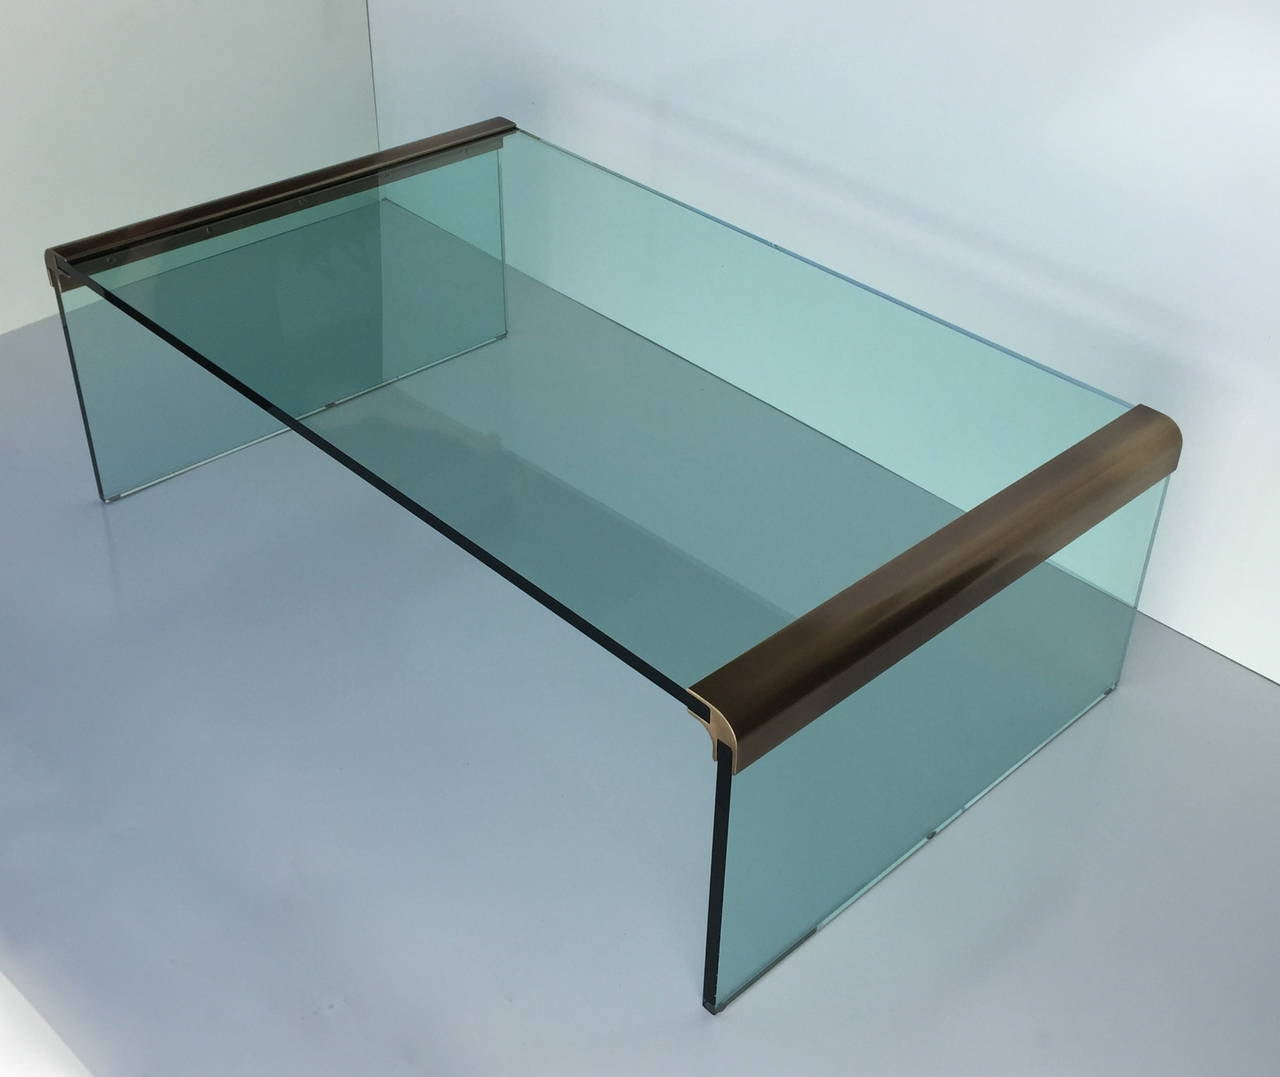 Burnished Brass And Glass Waterfall Coffee Table By Pace At 1stdibs